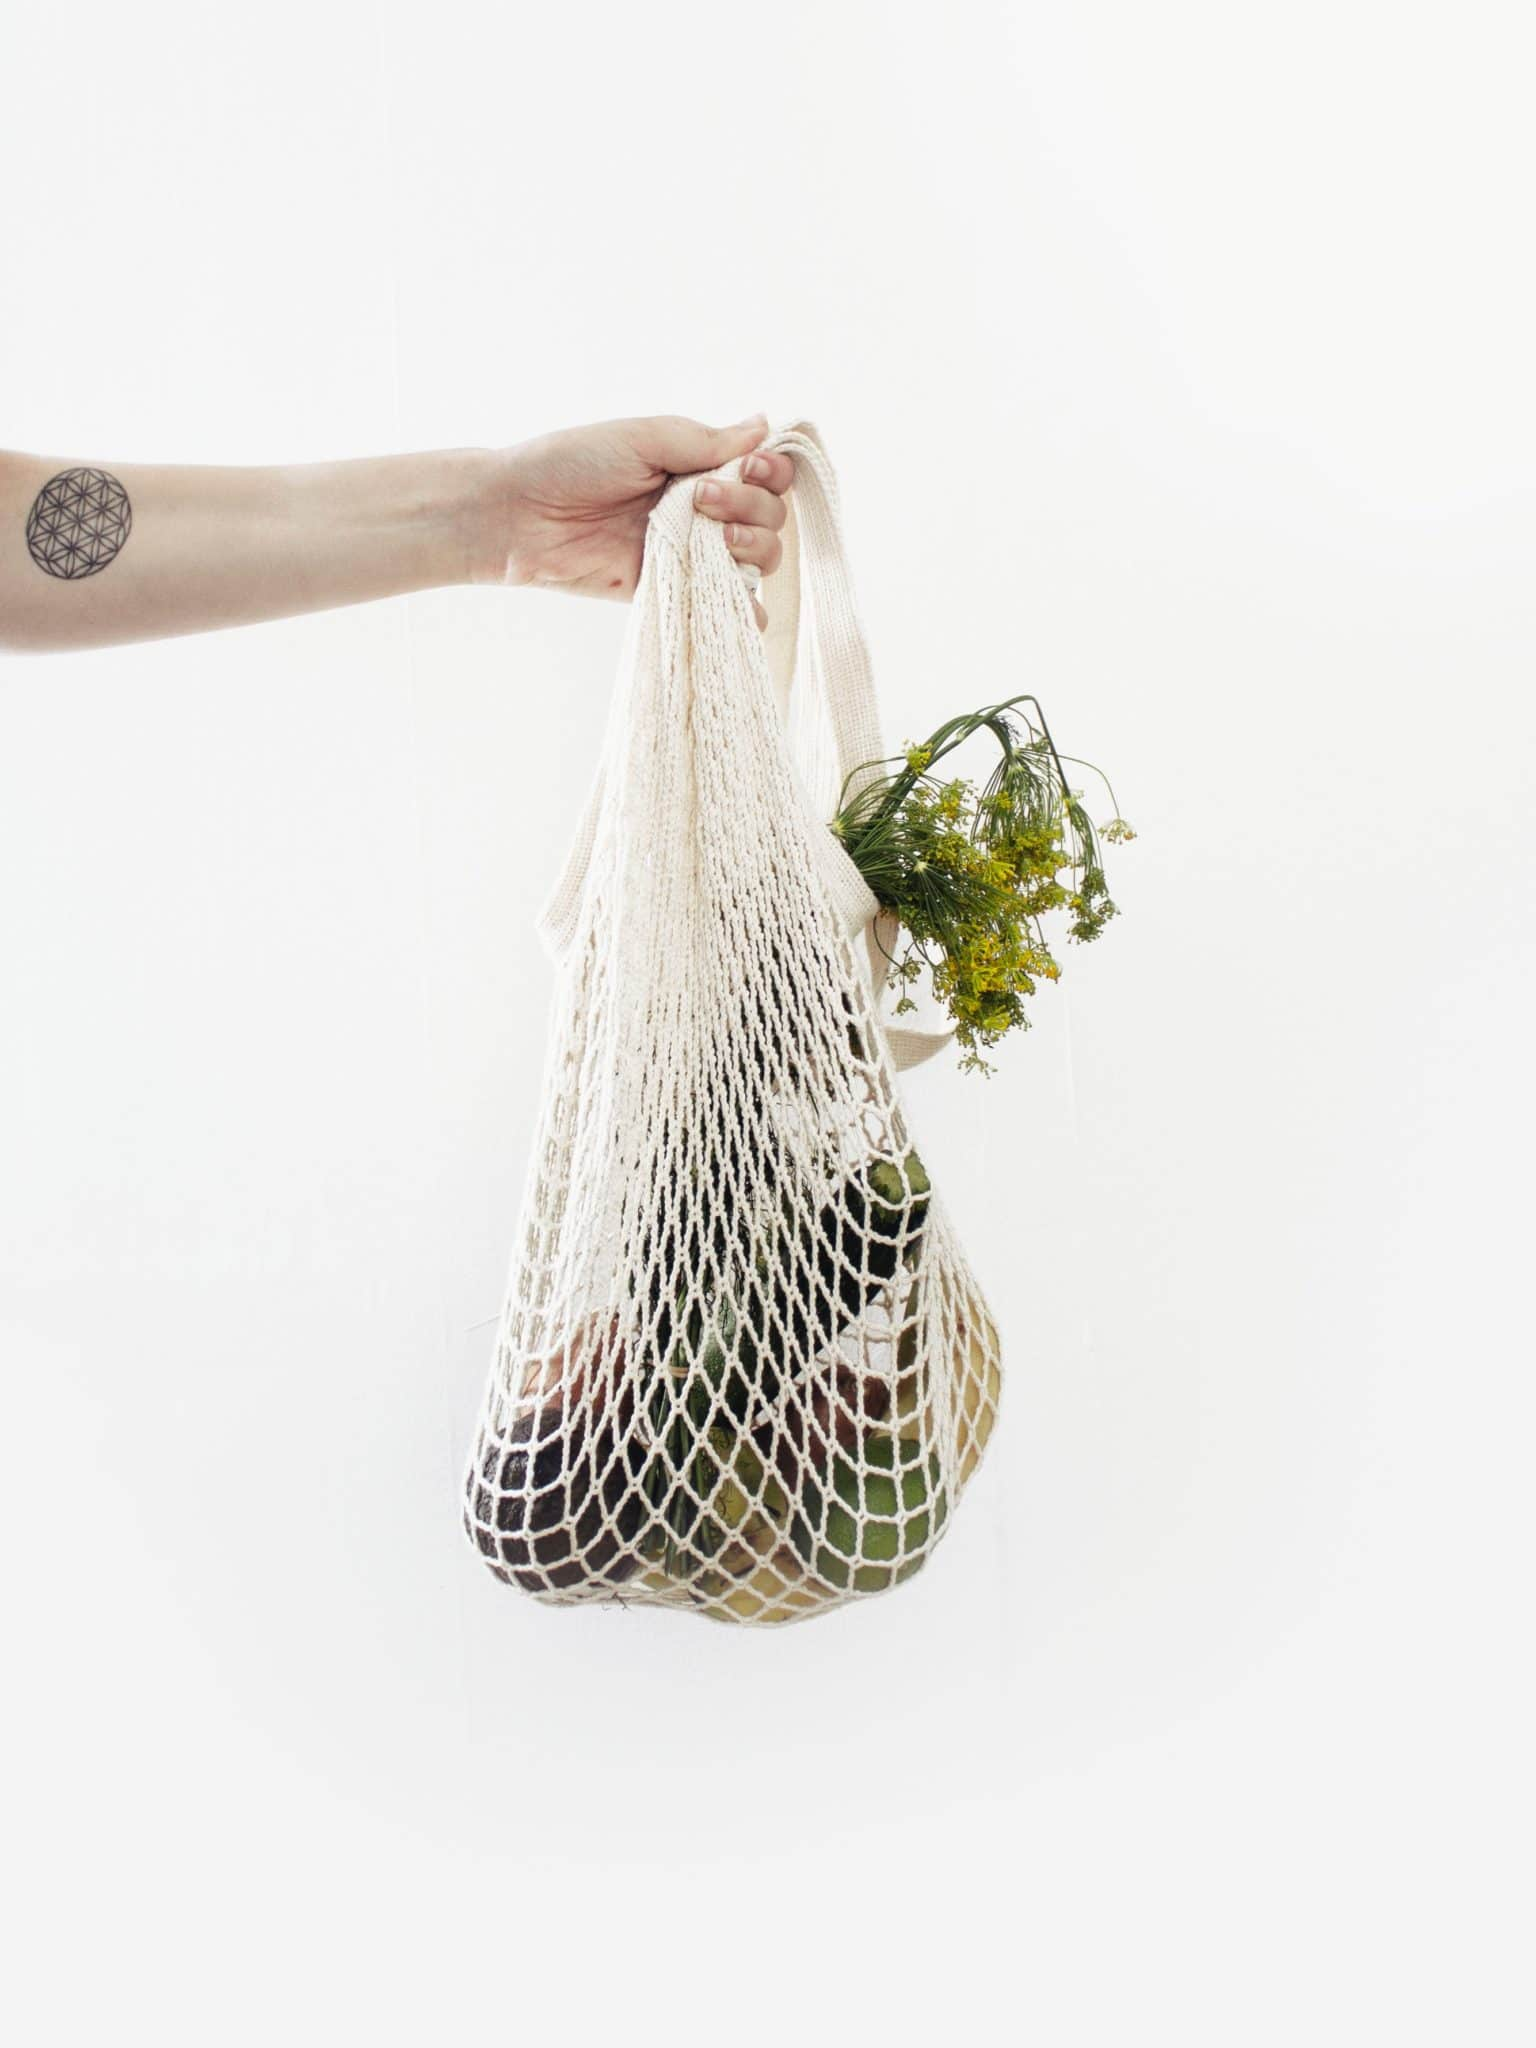 person carrying a reusable grocery bag with produce